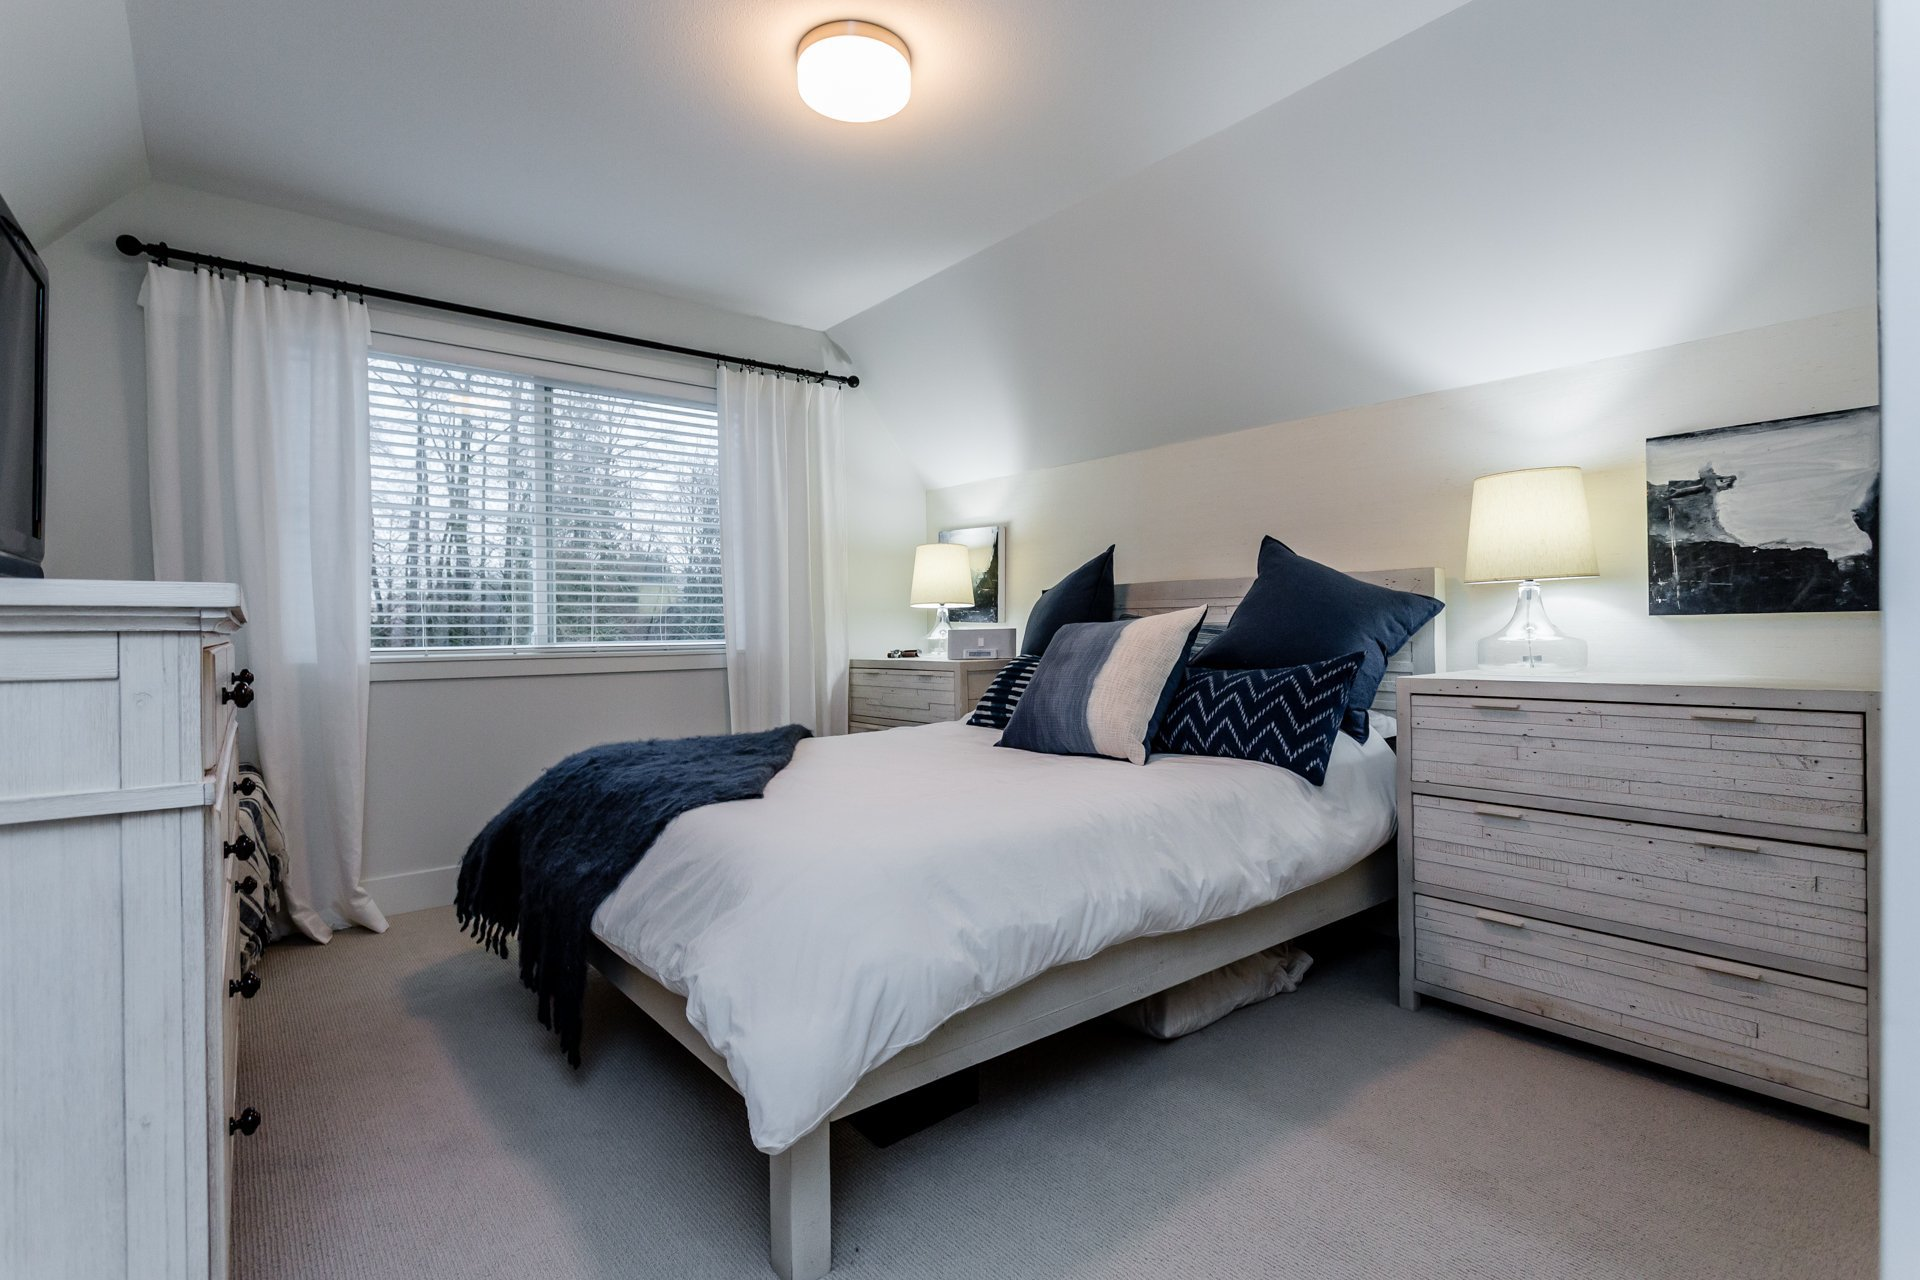 """Photo 28: Photos: 8 8217 204B Street in Langley: Willoughby Heights Townhouse for sale in """"EVERLY GREEN"""" : MLS®# R2236678"""